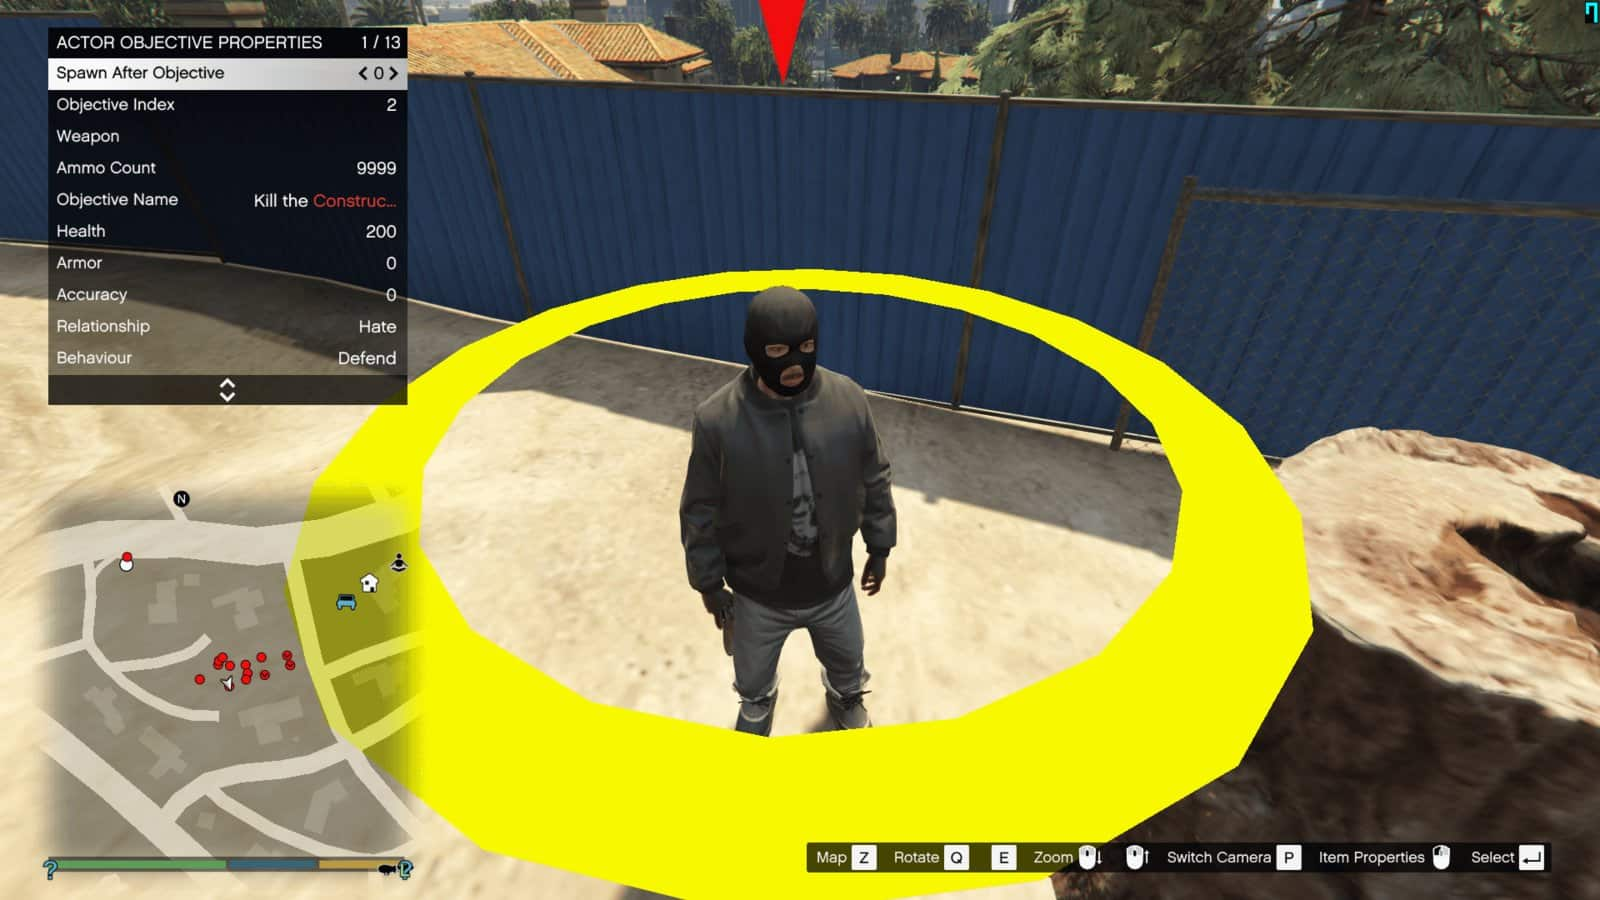 Make Your Own Missions With This GTA V Mod - GTA BOOM